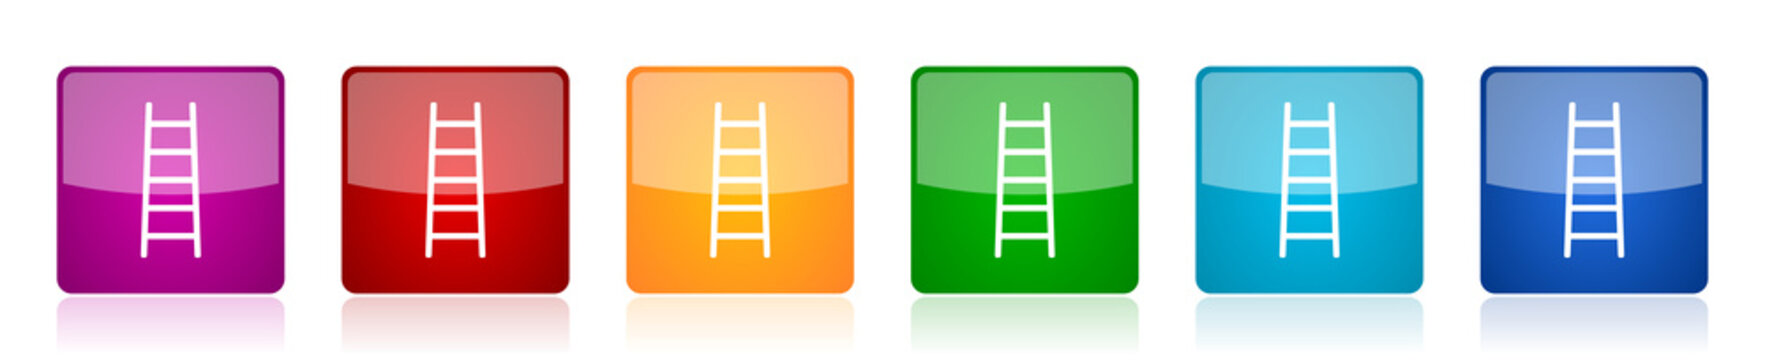 Ladder icon set, step, climb, tool, level colorful square glossy vector illustrations in 6 options for web design and mobile applications